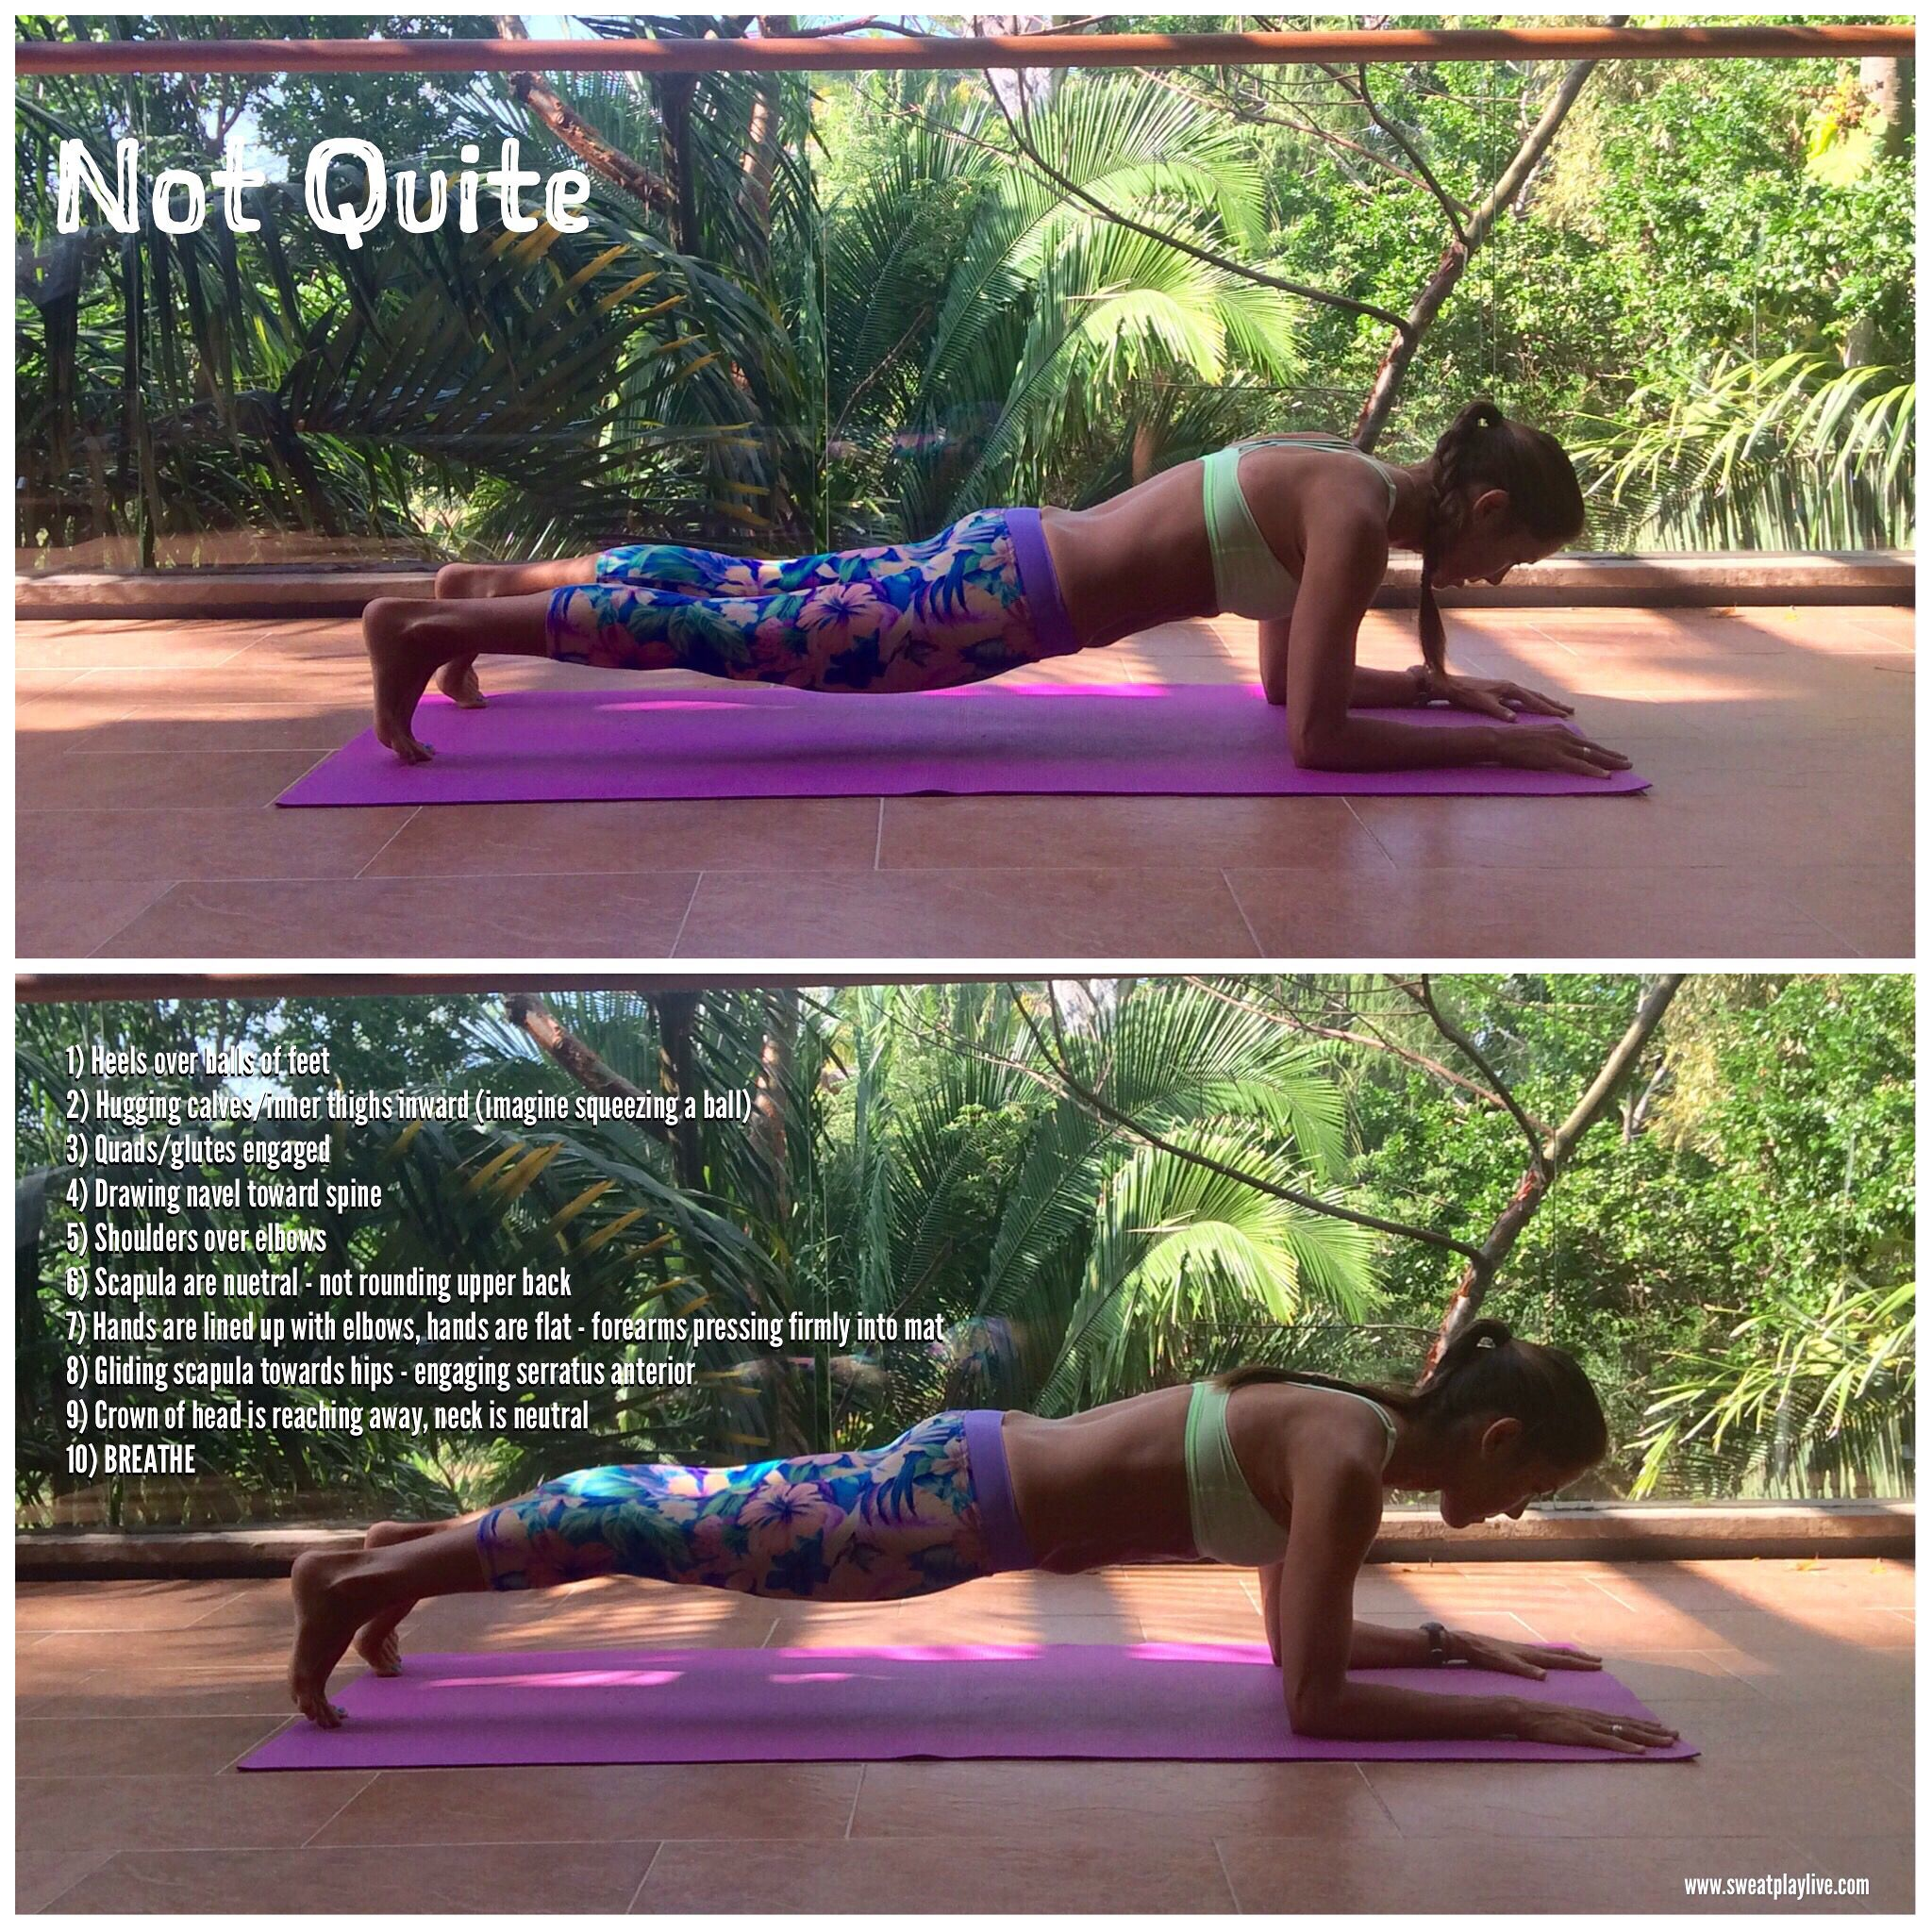 957c7f0ba5a Plank - The BEST exercise in the world... but only if you do it right! You  can modify by placing your knees on the ground - but keep everything else  the ...